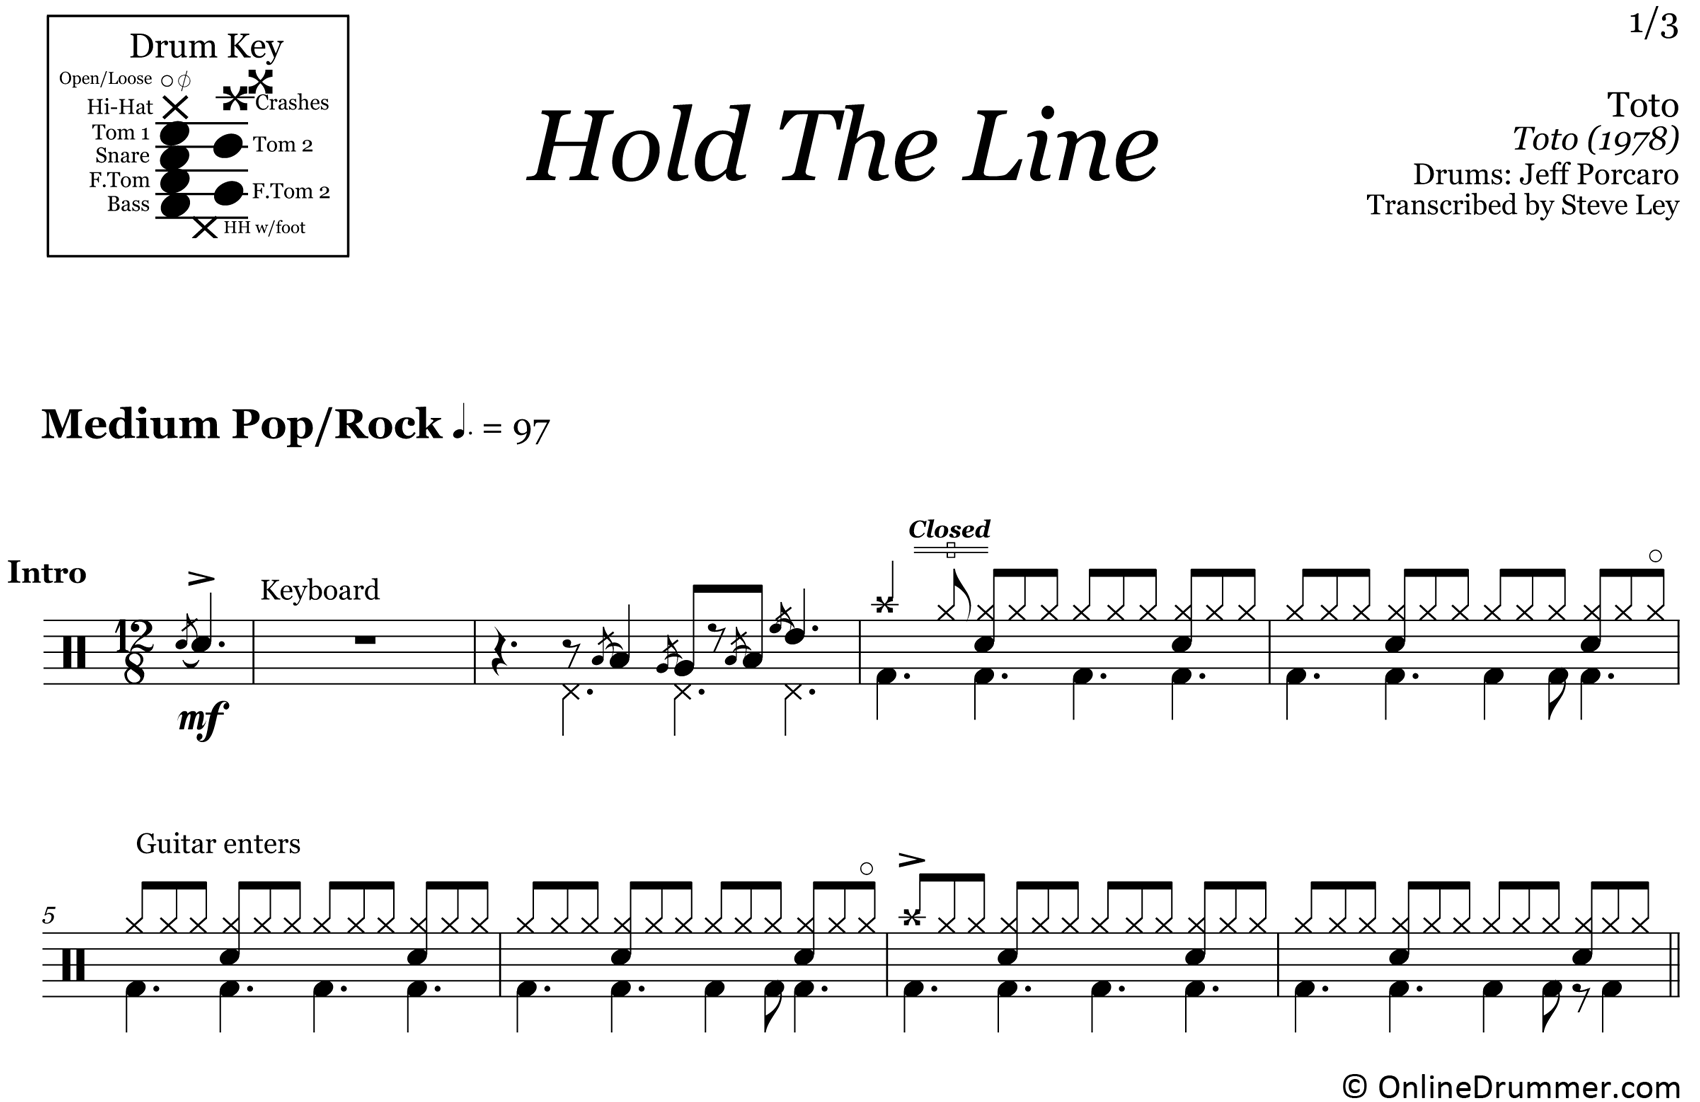 Hold The Line - Toto - Drum Sheet Music